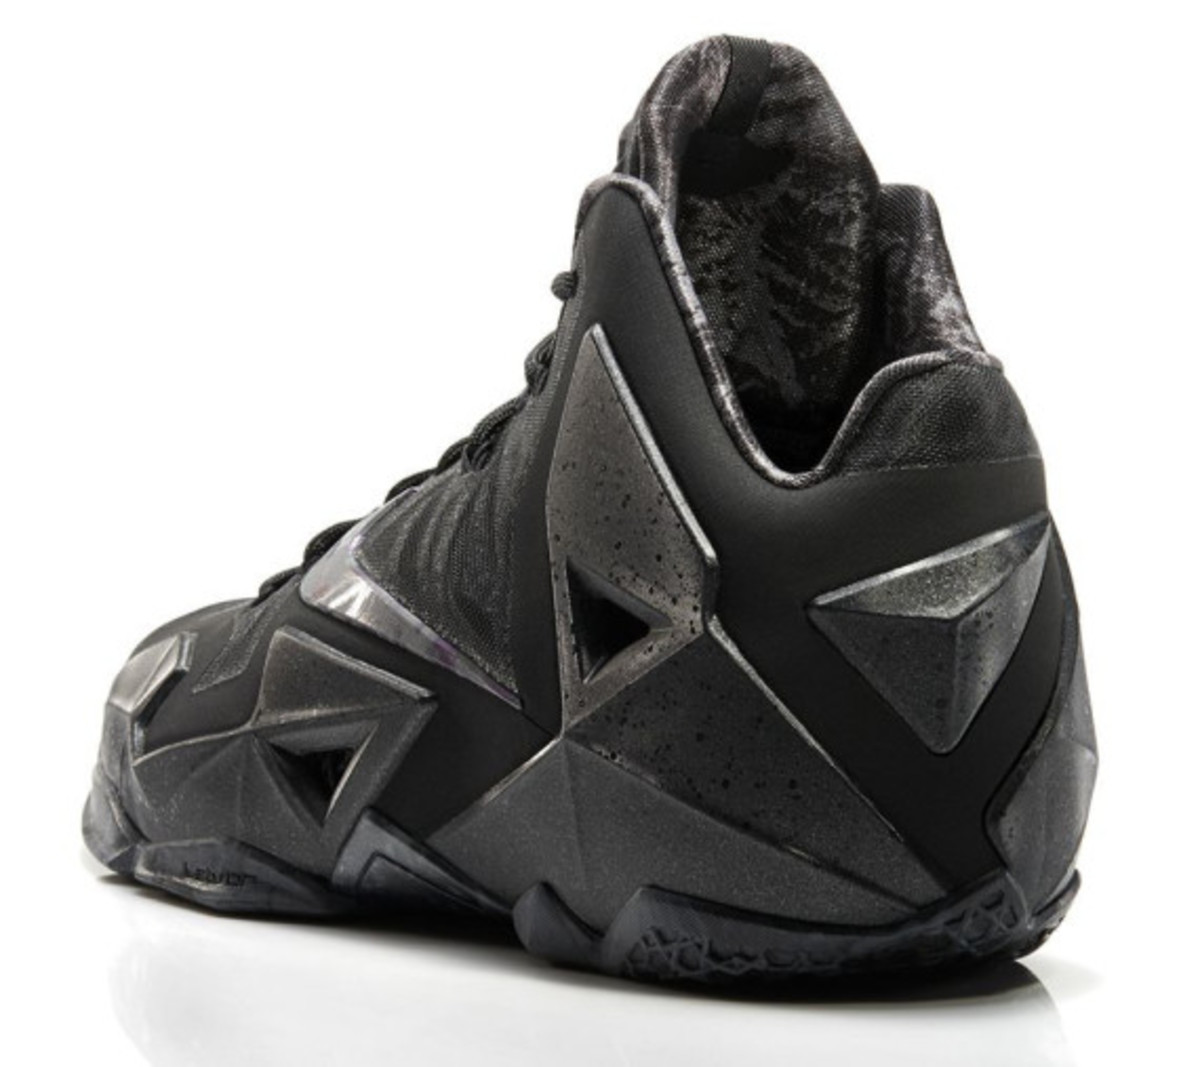 nike-lebron-11-anthracite-release-info-03